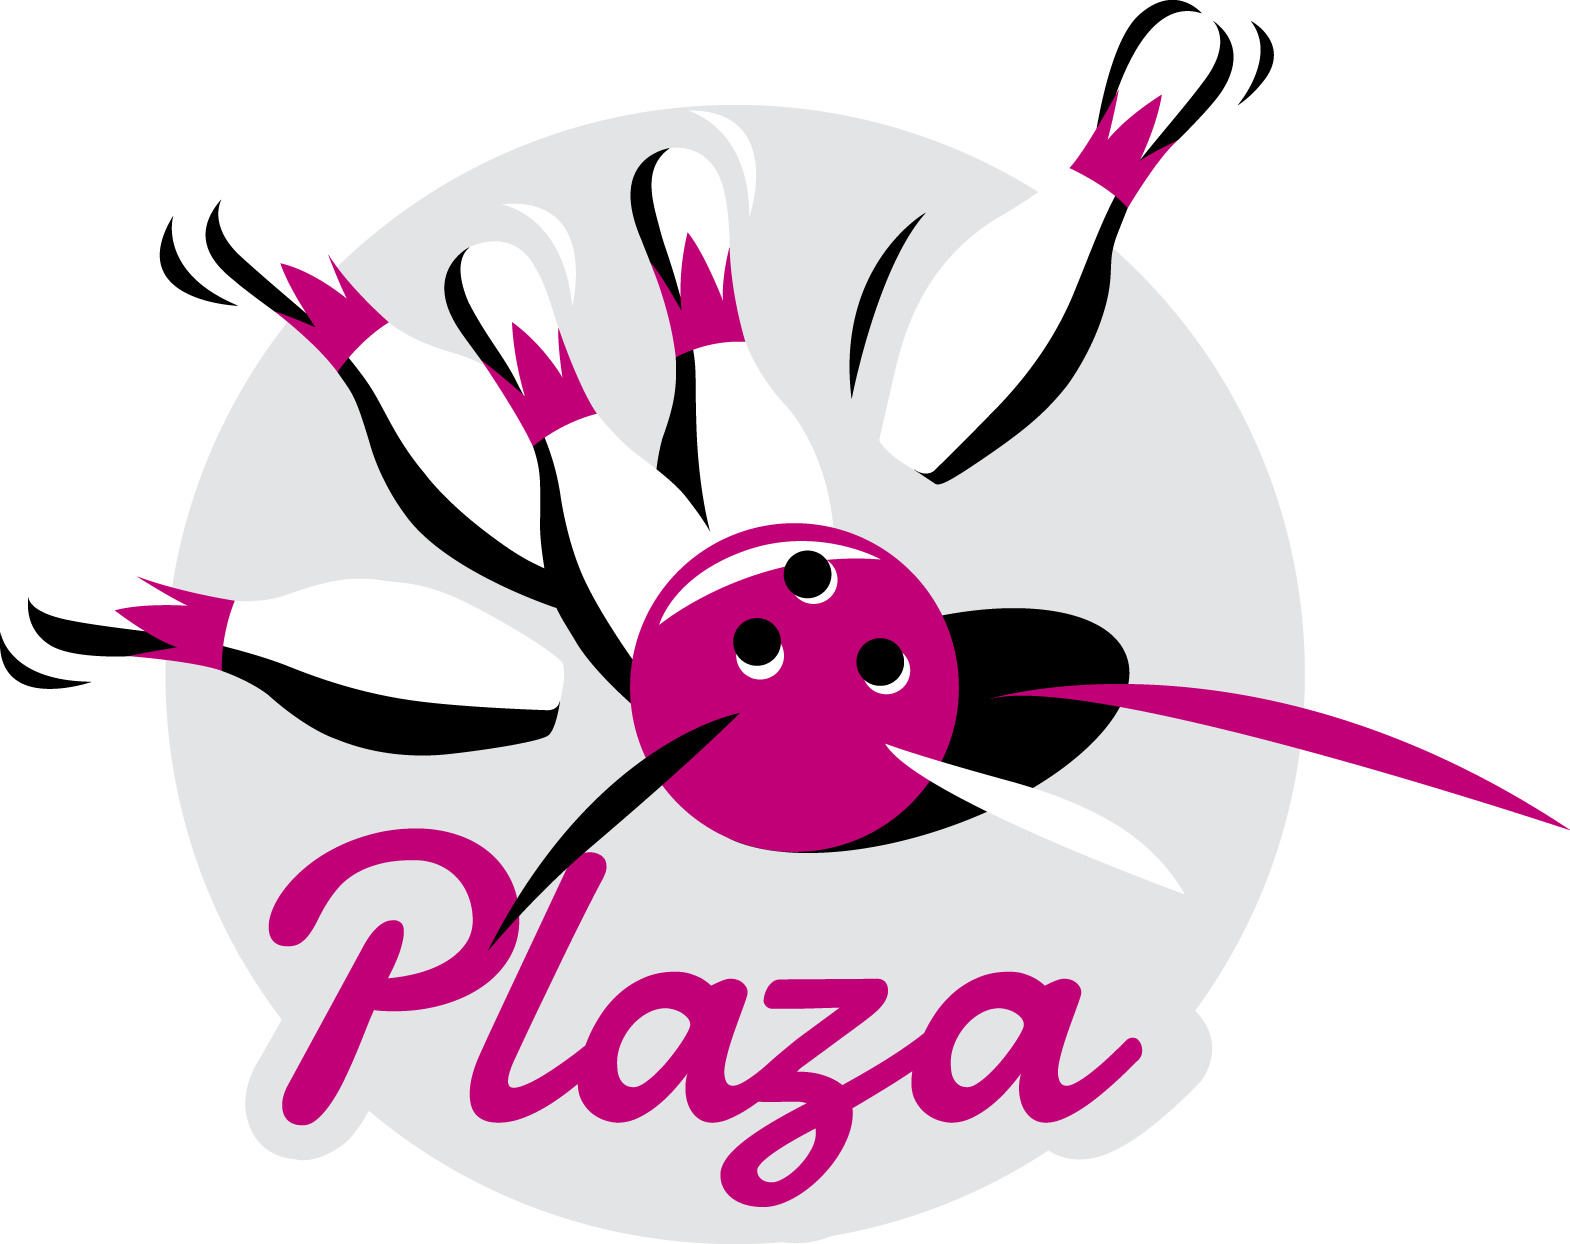 https://rouenmetrobasket.com/wp-content/uploads/2019/04/Logo-Plaza-Bowling.png